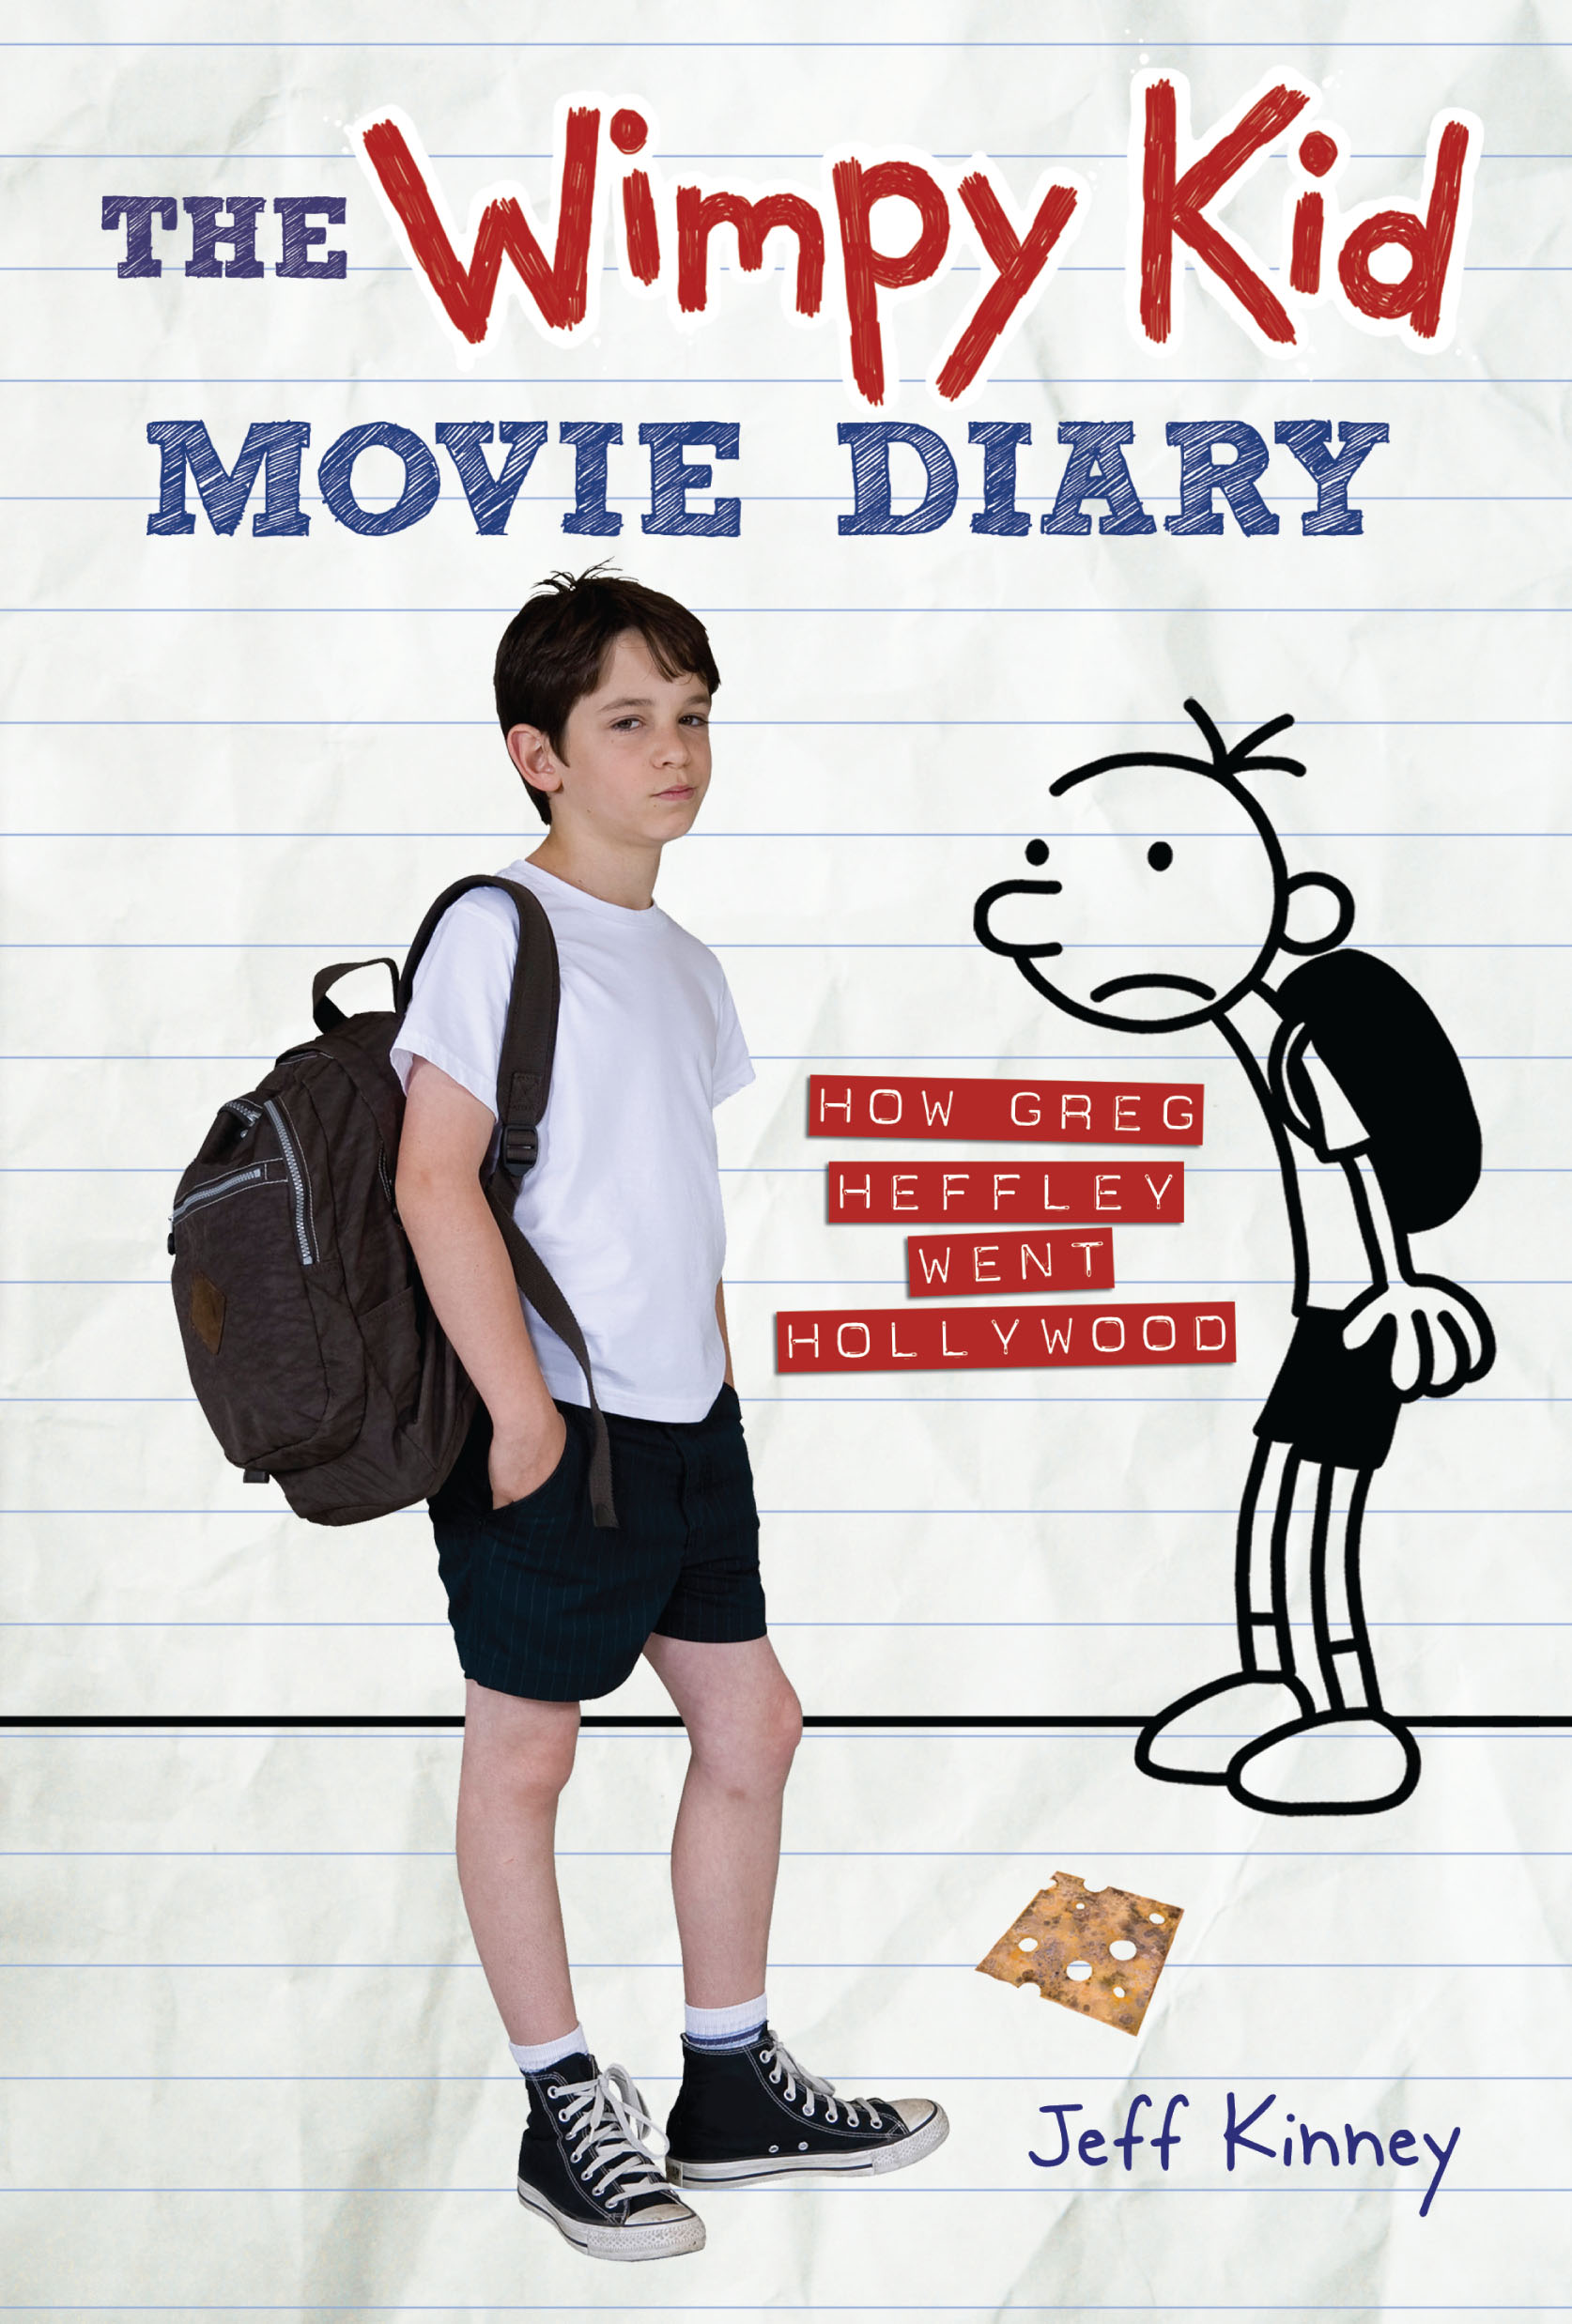 Wimpy Kid creator Jeff Kinney talks about his day job